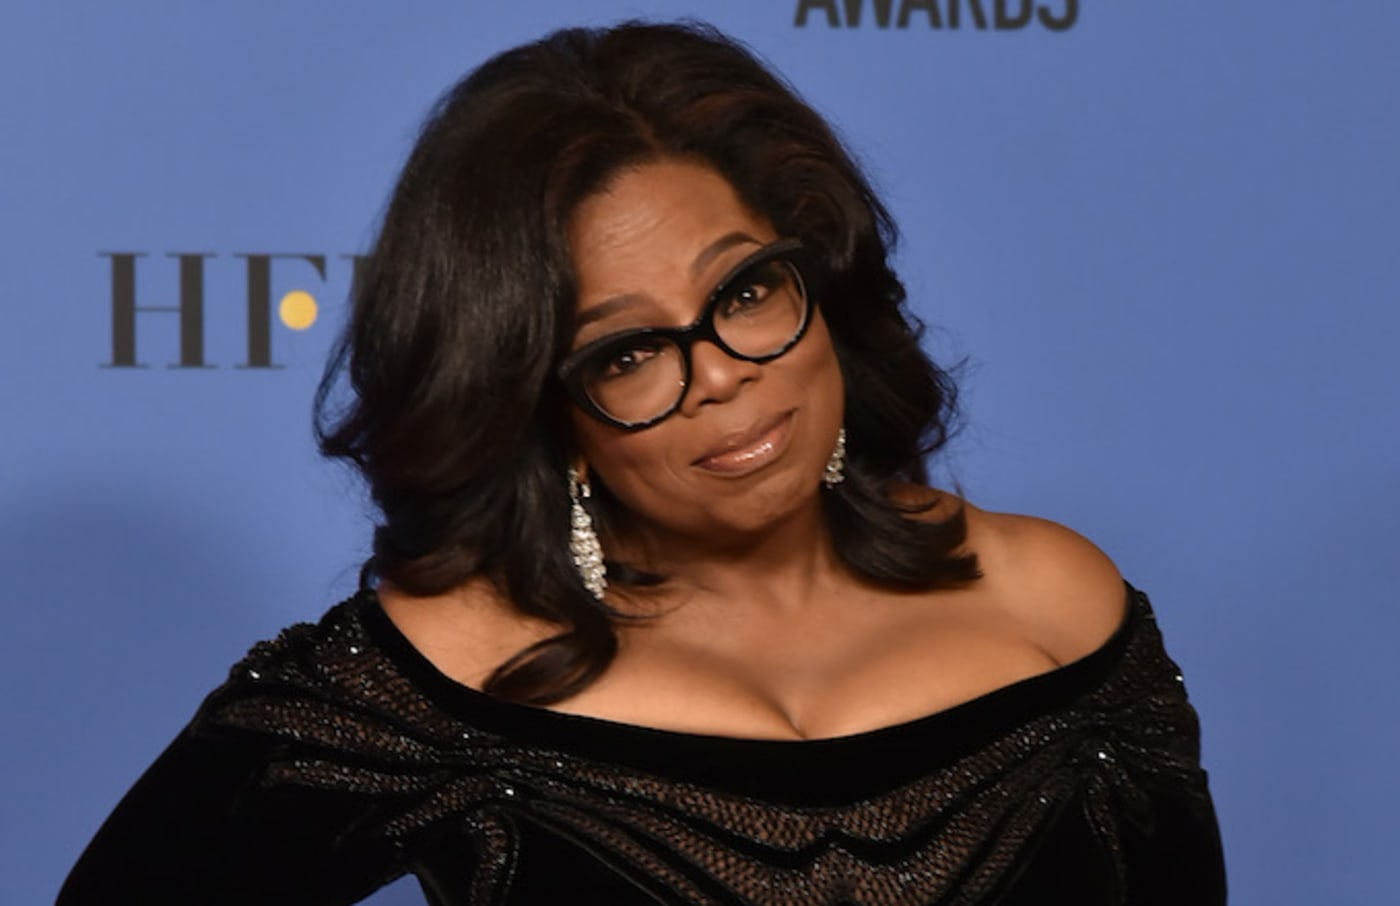 This is Oprah Winfrey at the Golden Globes.